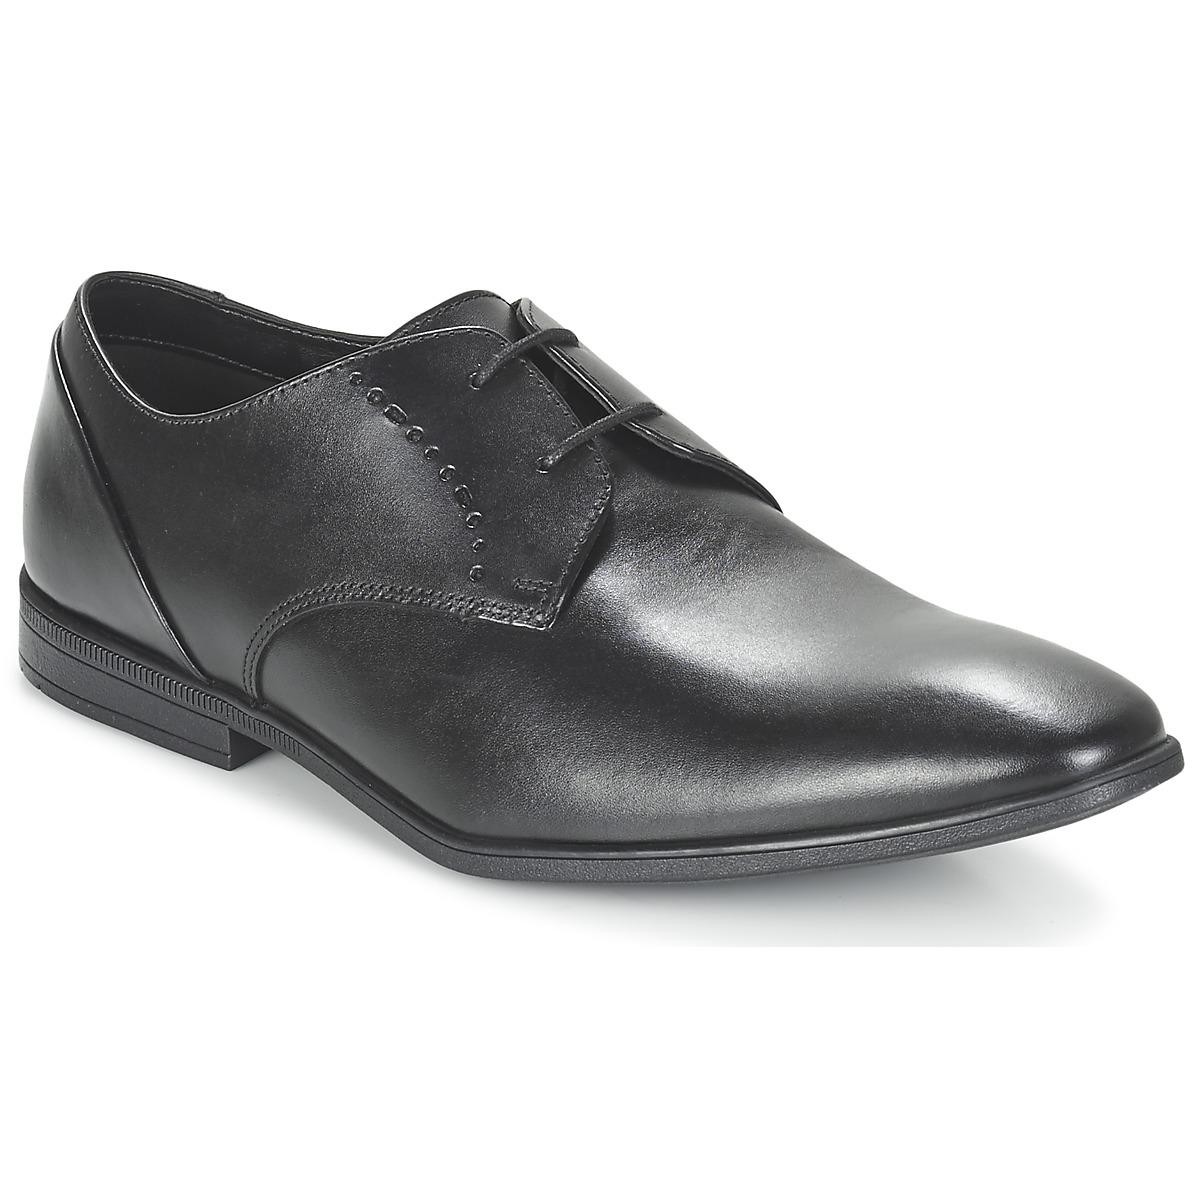 e59000c74280 Clarks Bampton Lace Smart   Formal Shoes in Black for Men - Lyst